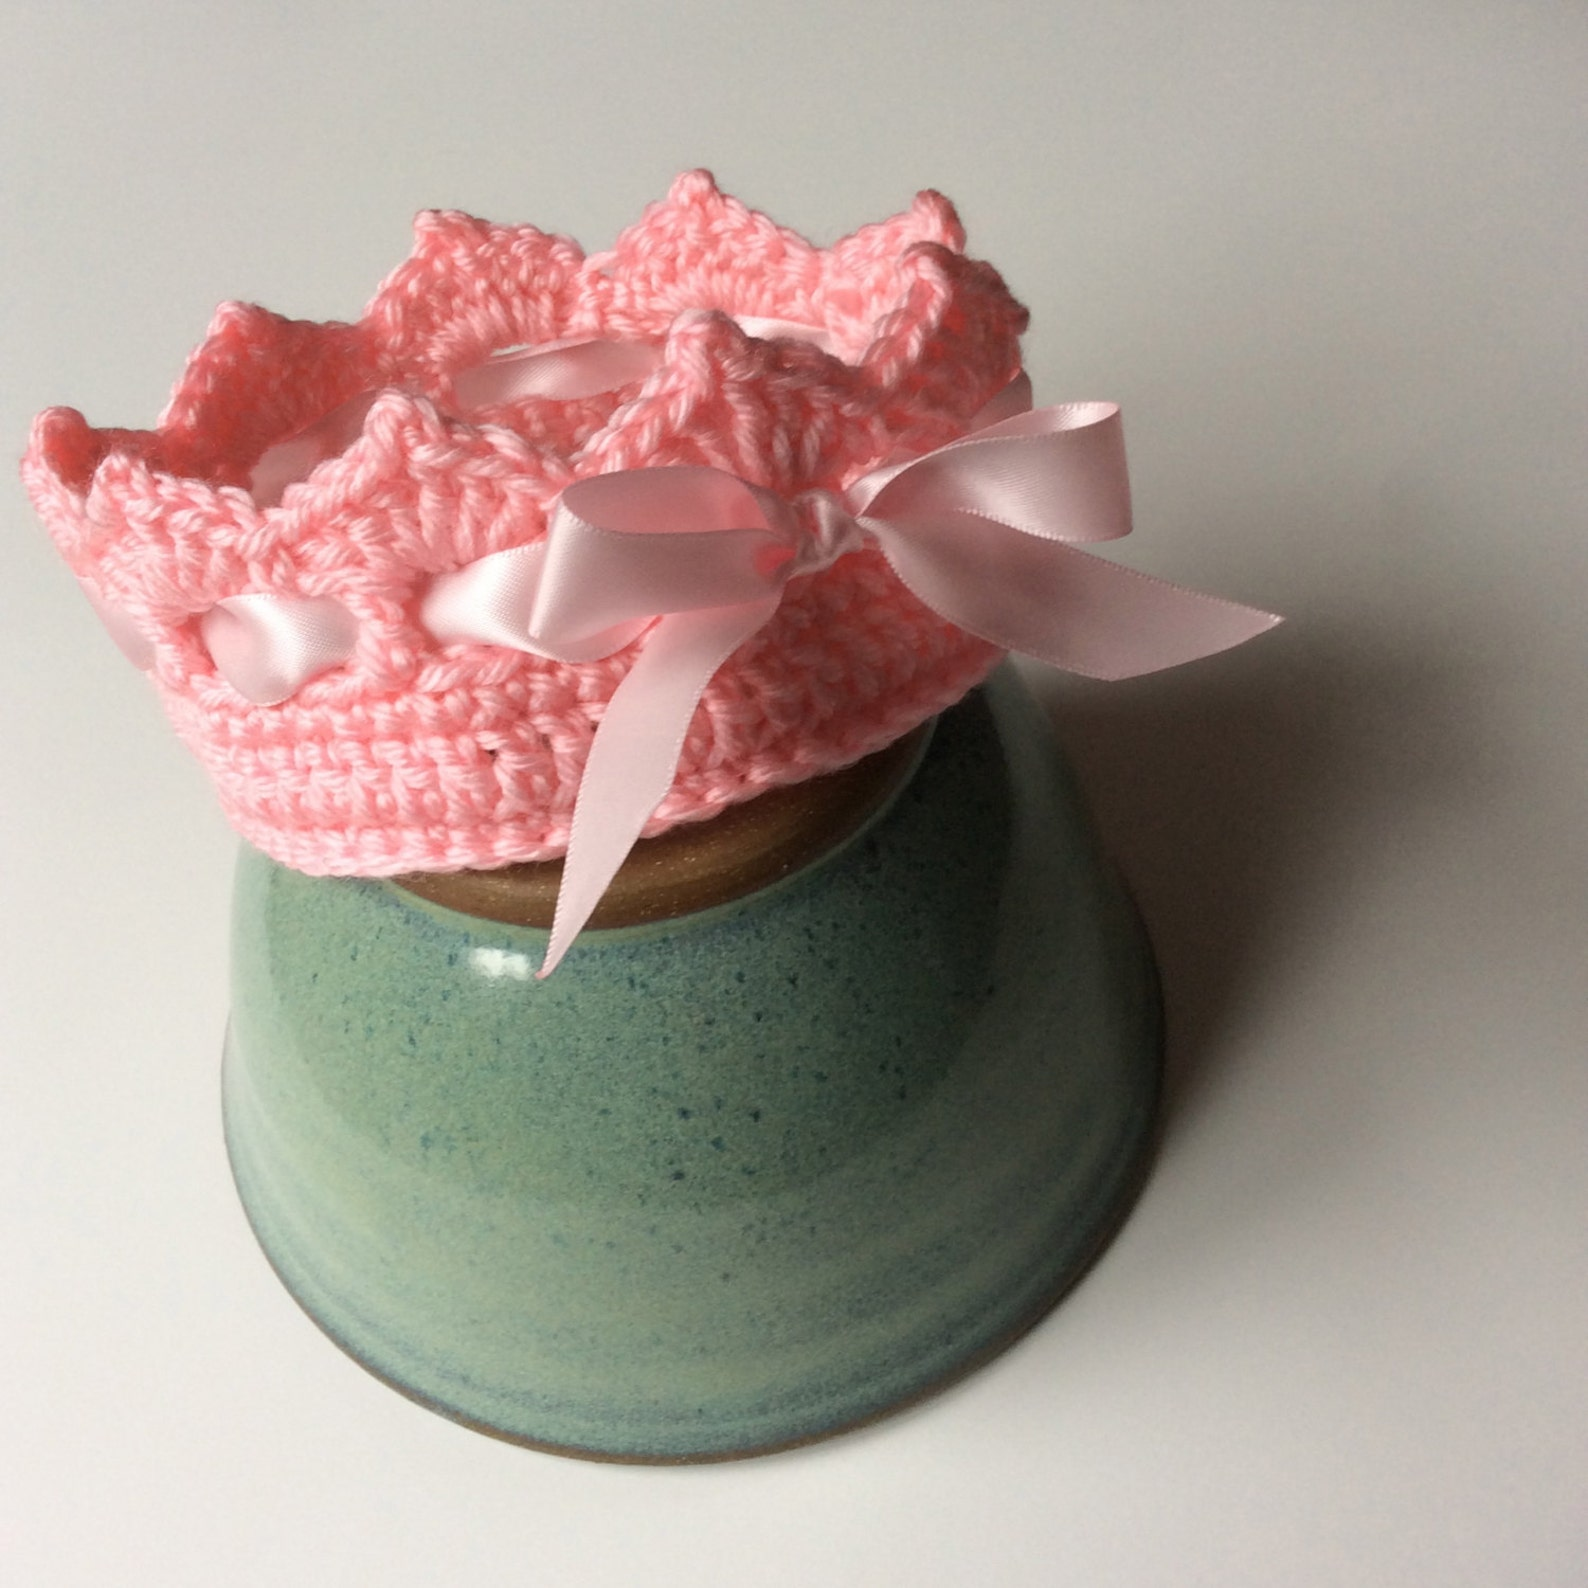 pointe shoe baby booties and crown set, crochet ballet slippers and crown for newborn